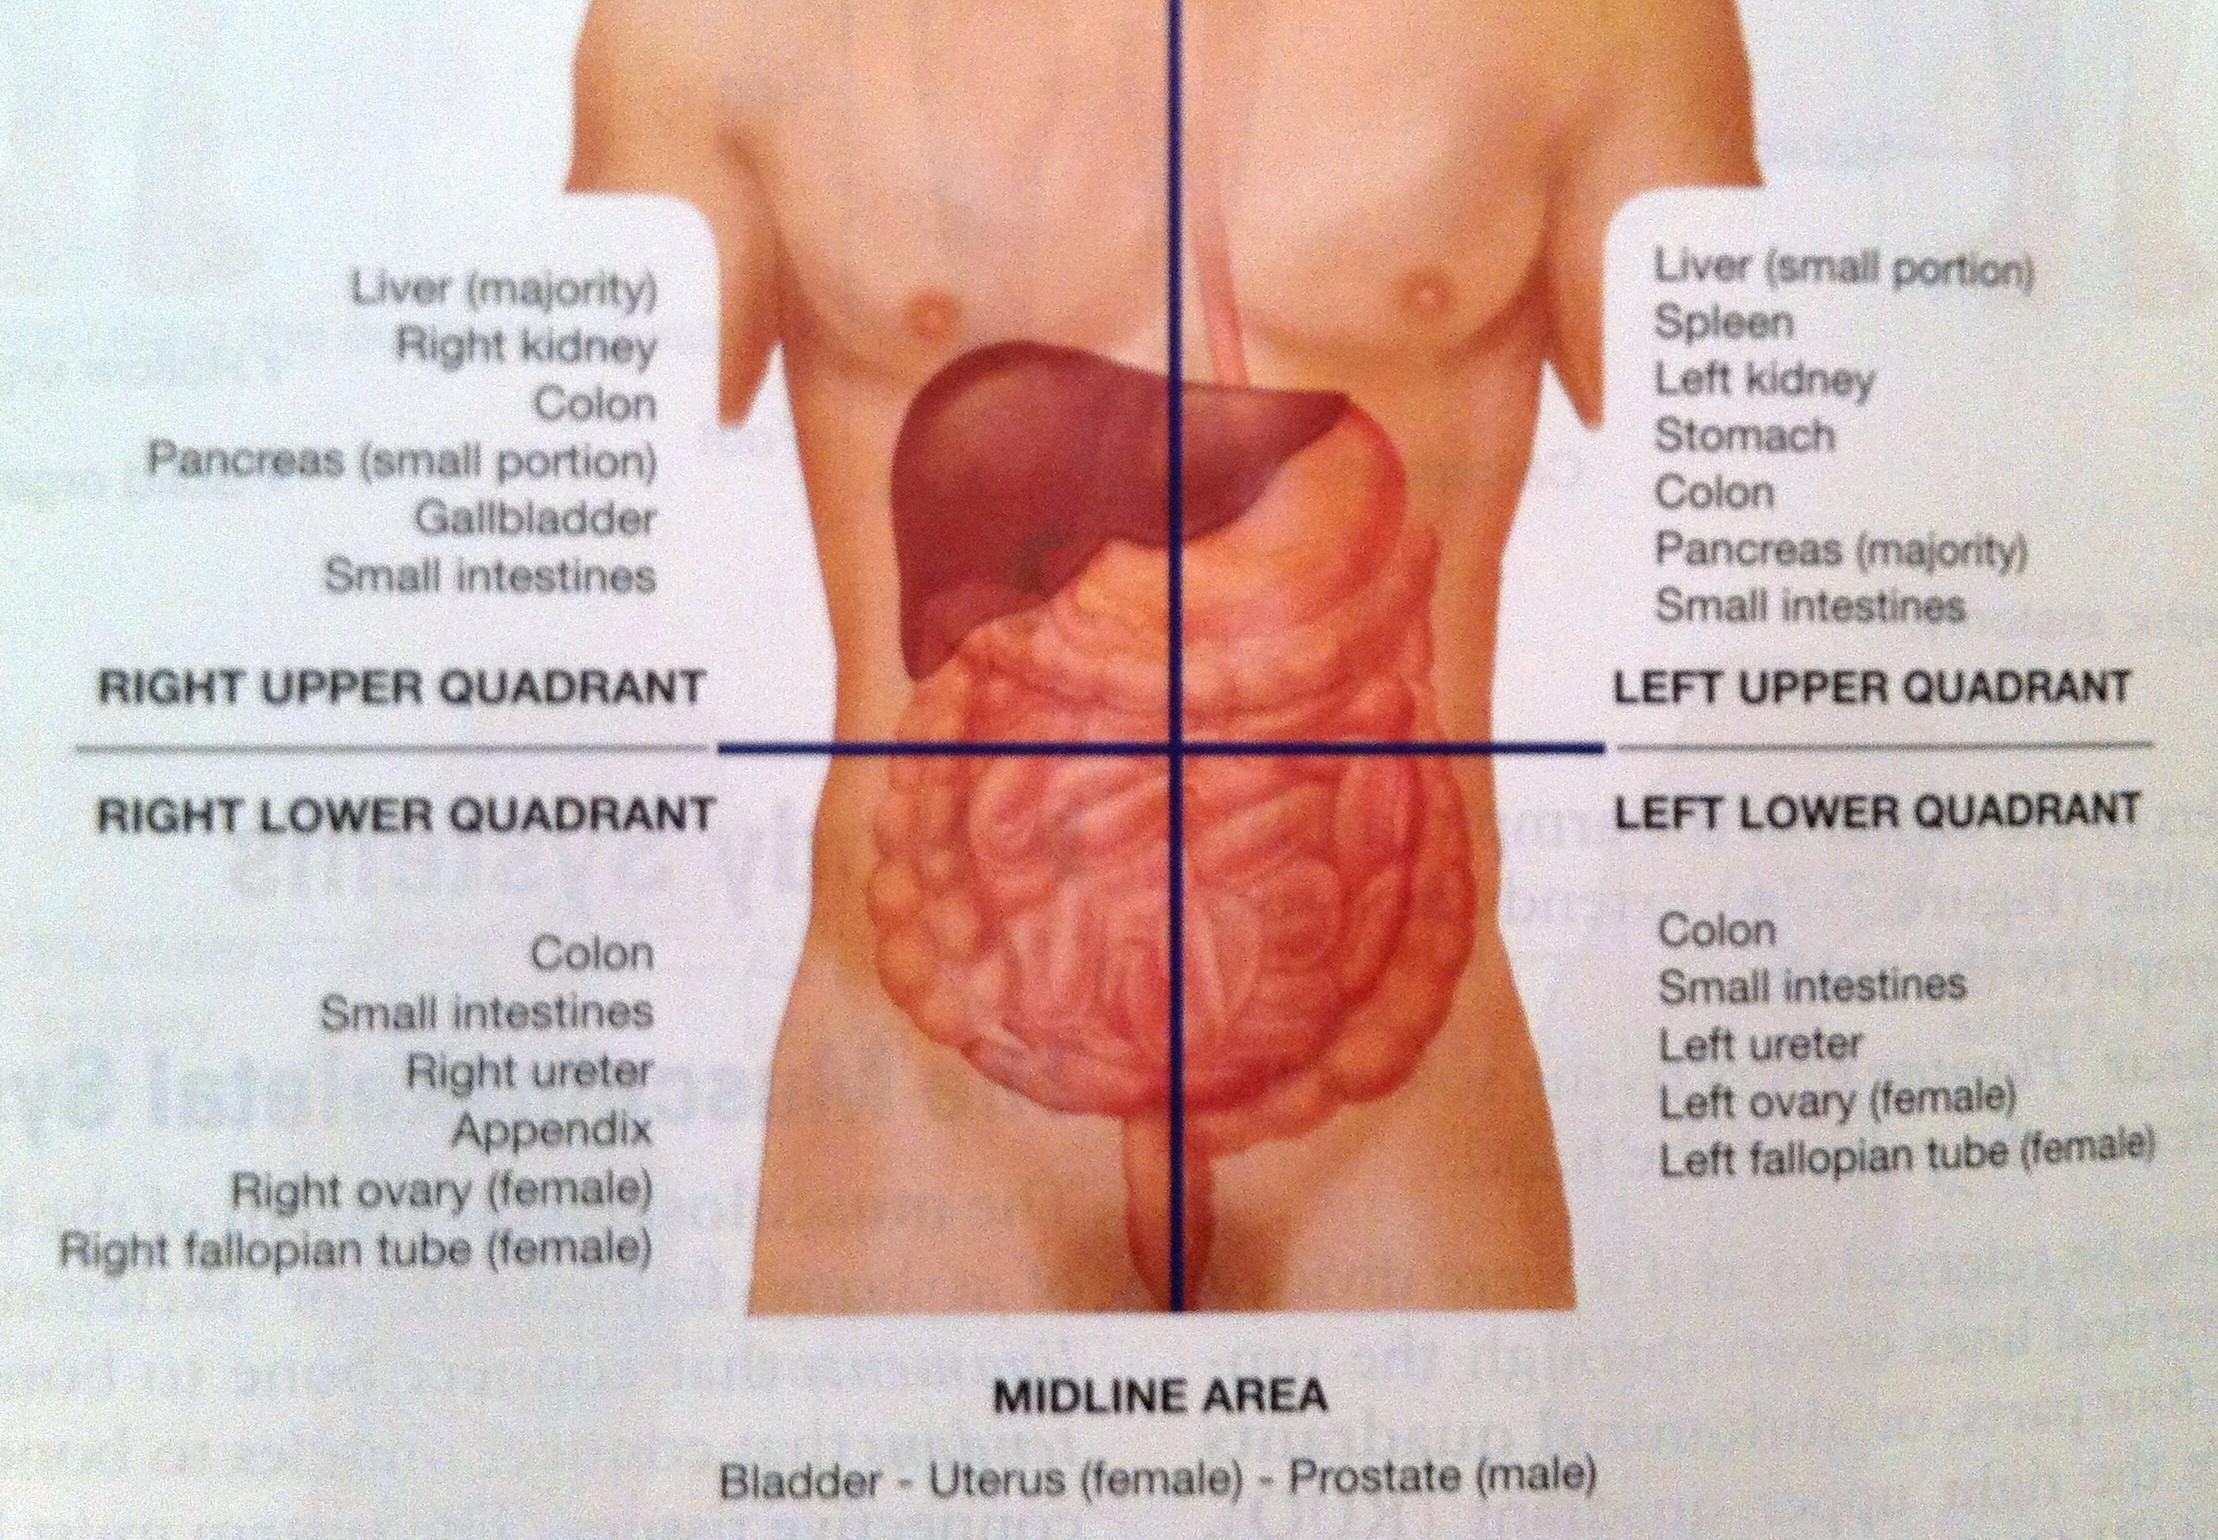 Abdominal Quadrants And Organs Diagram Wiring Diagram